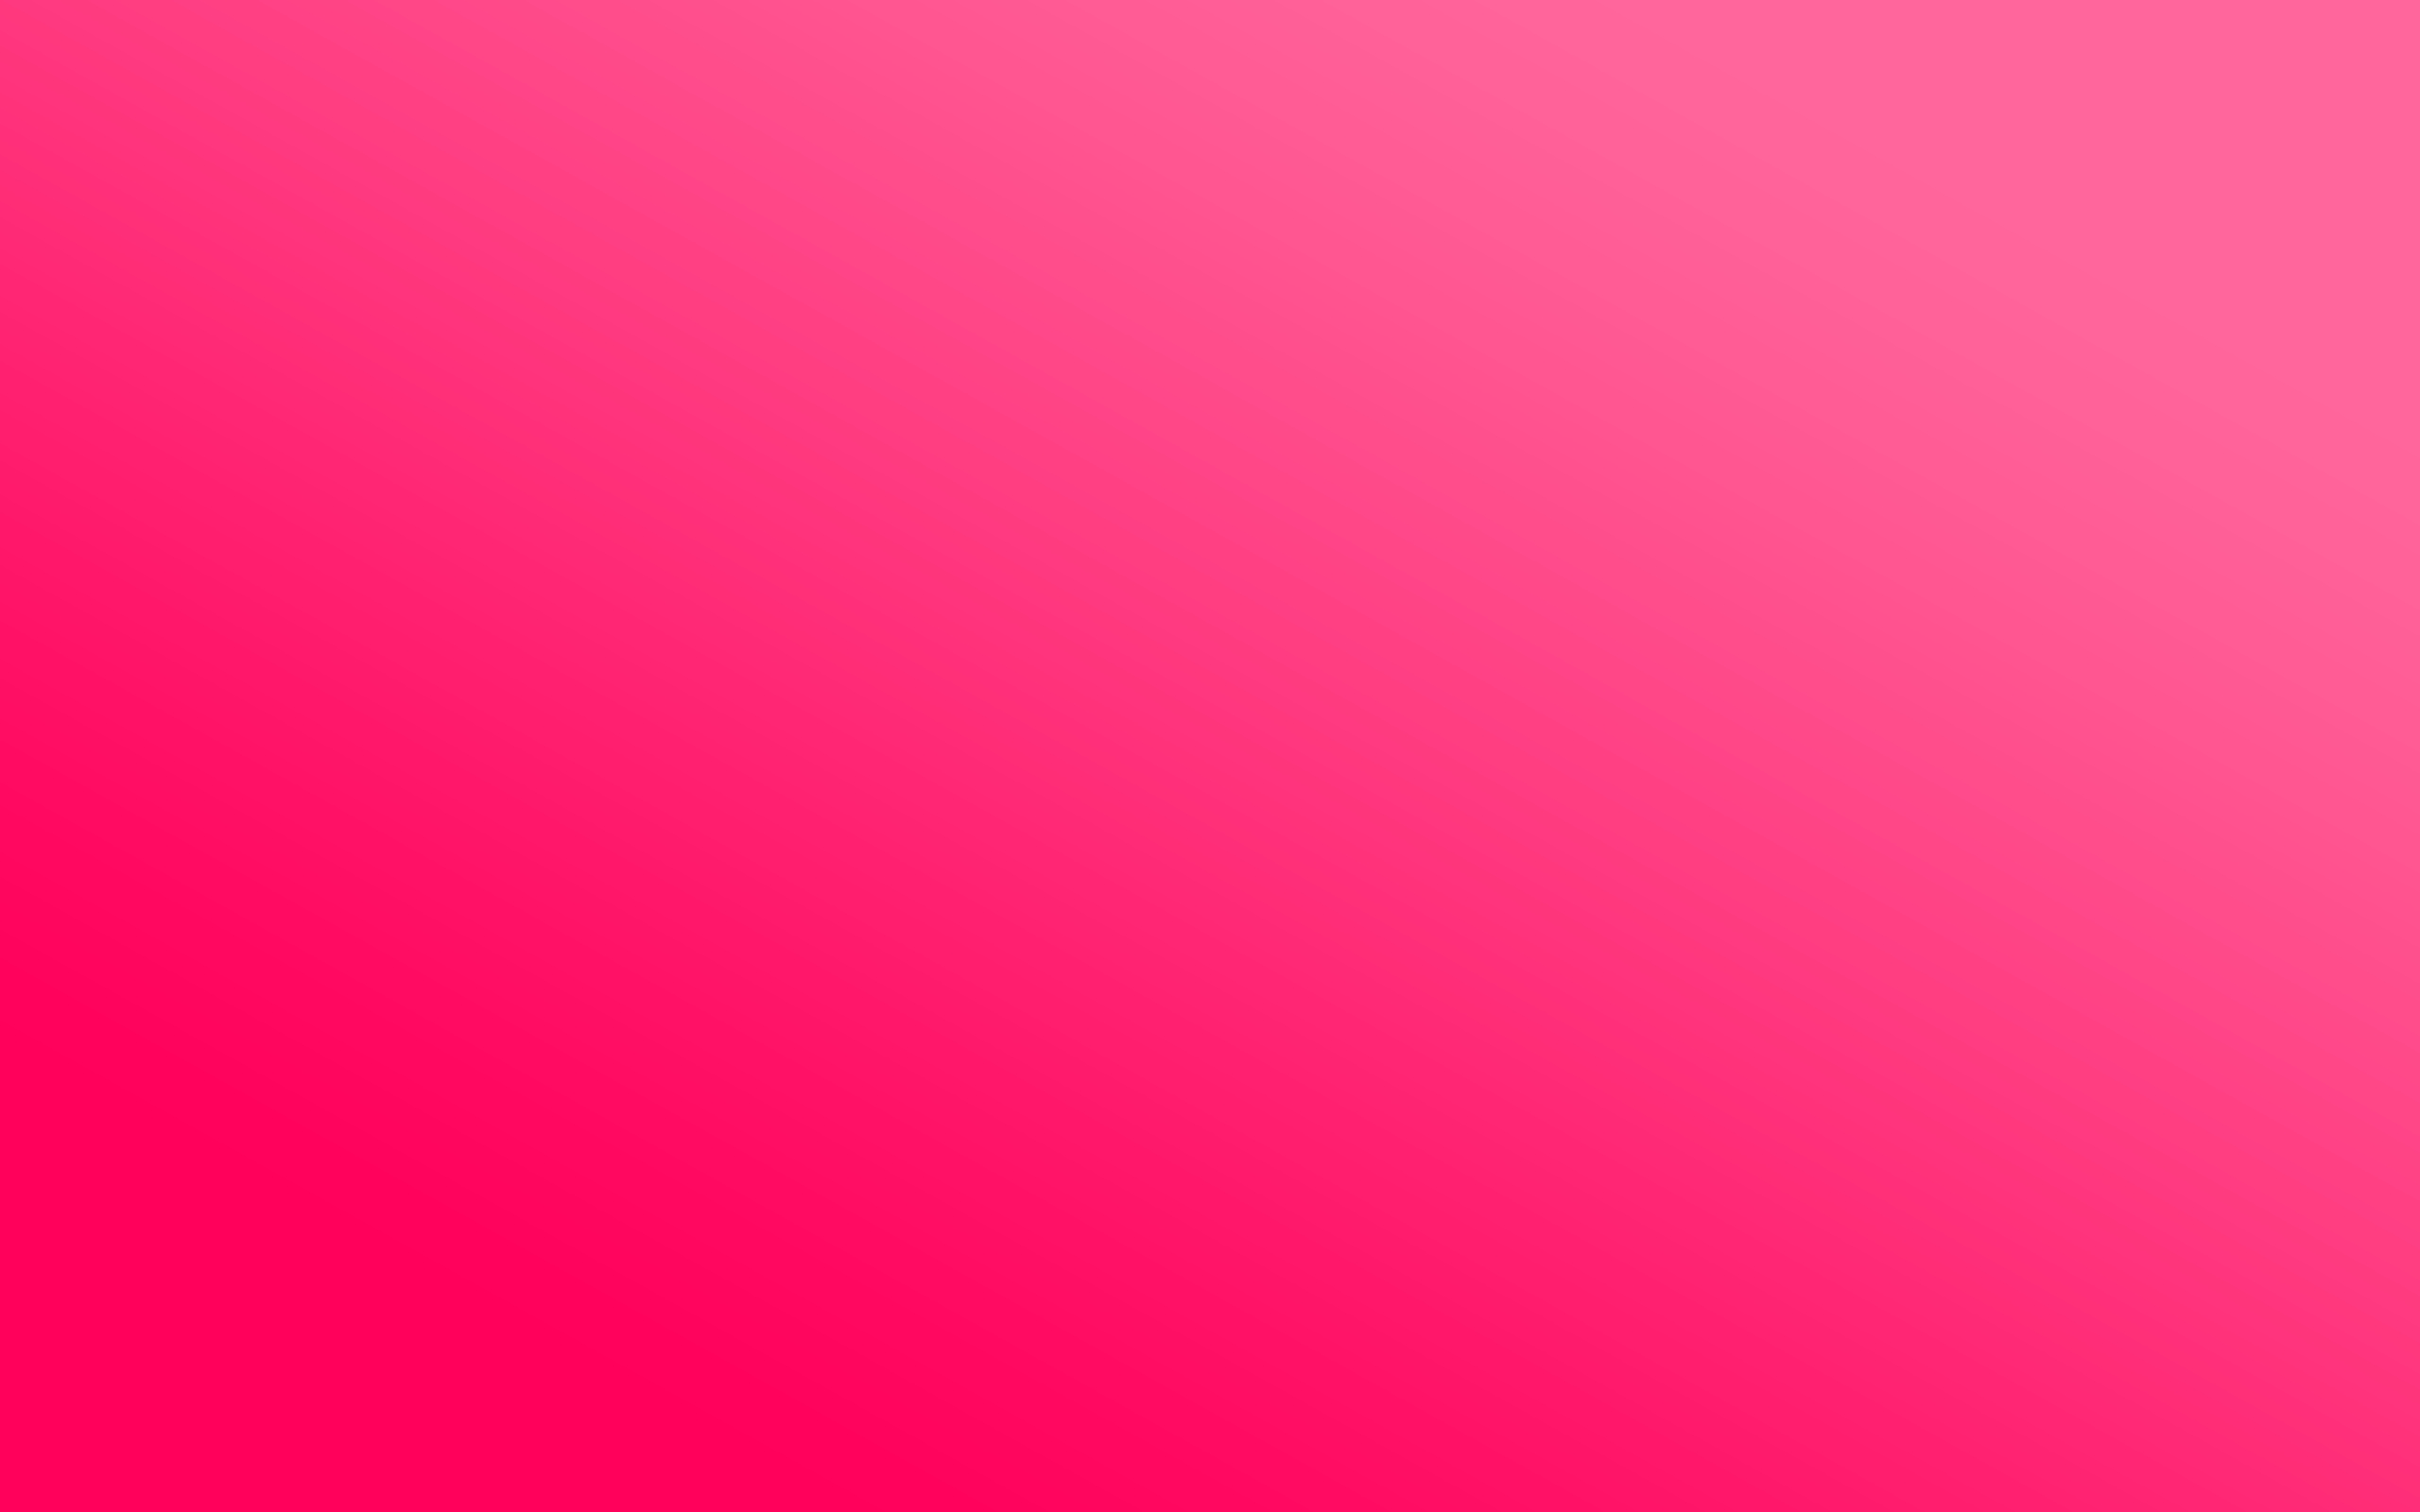 File Name 870499 Pink Solid Color HD Wallpapers Backgrounds 2560x1600